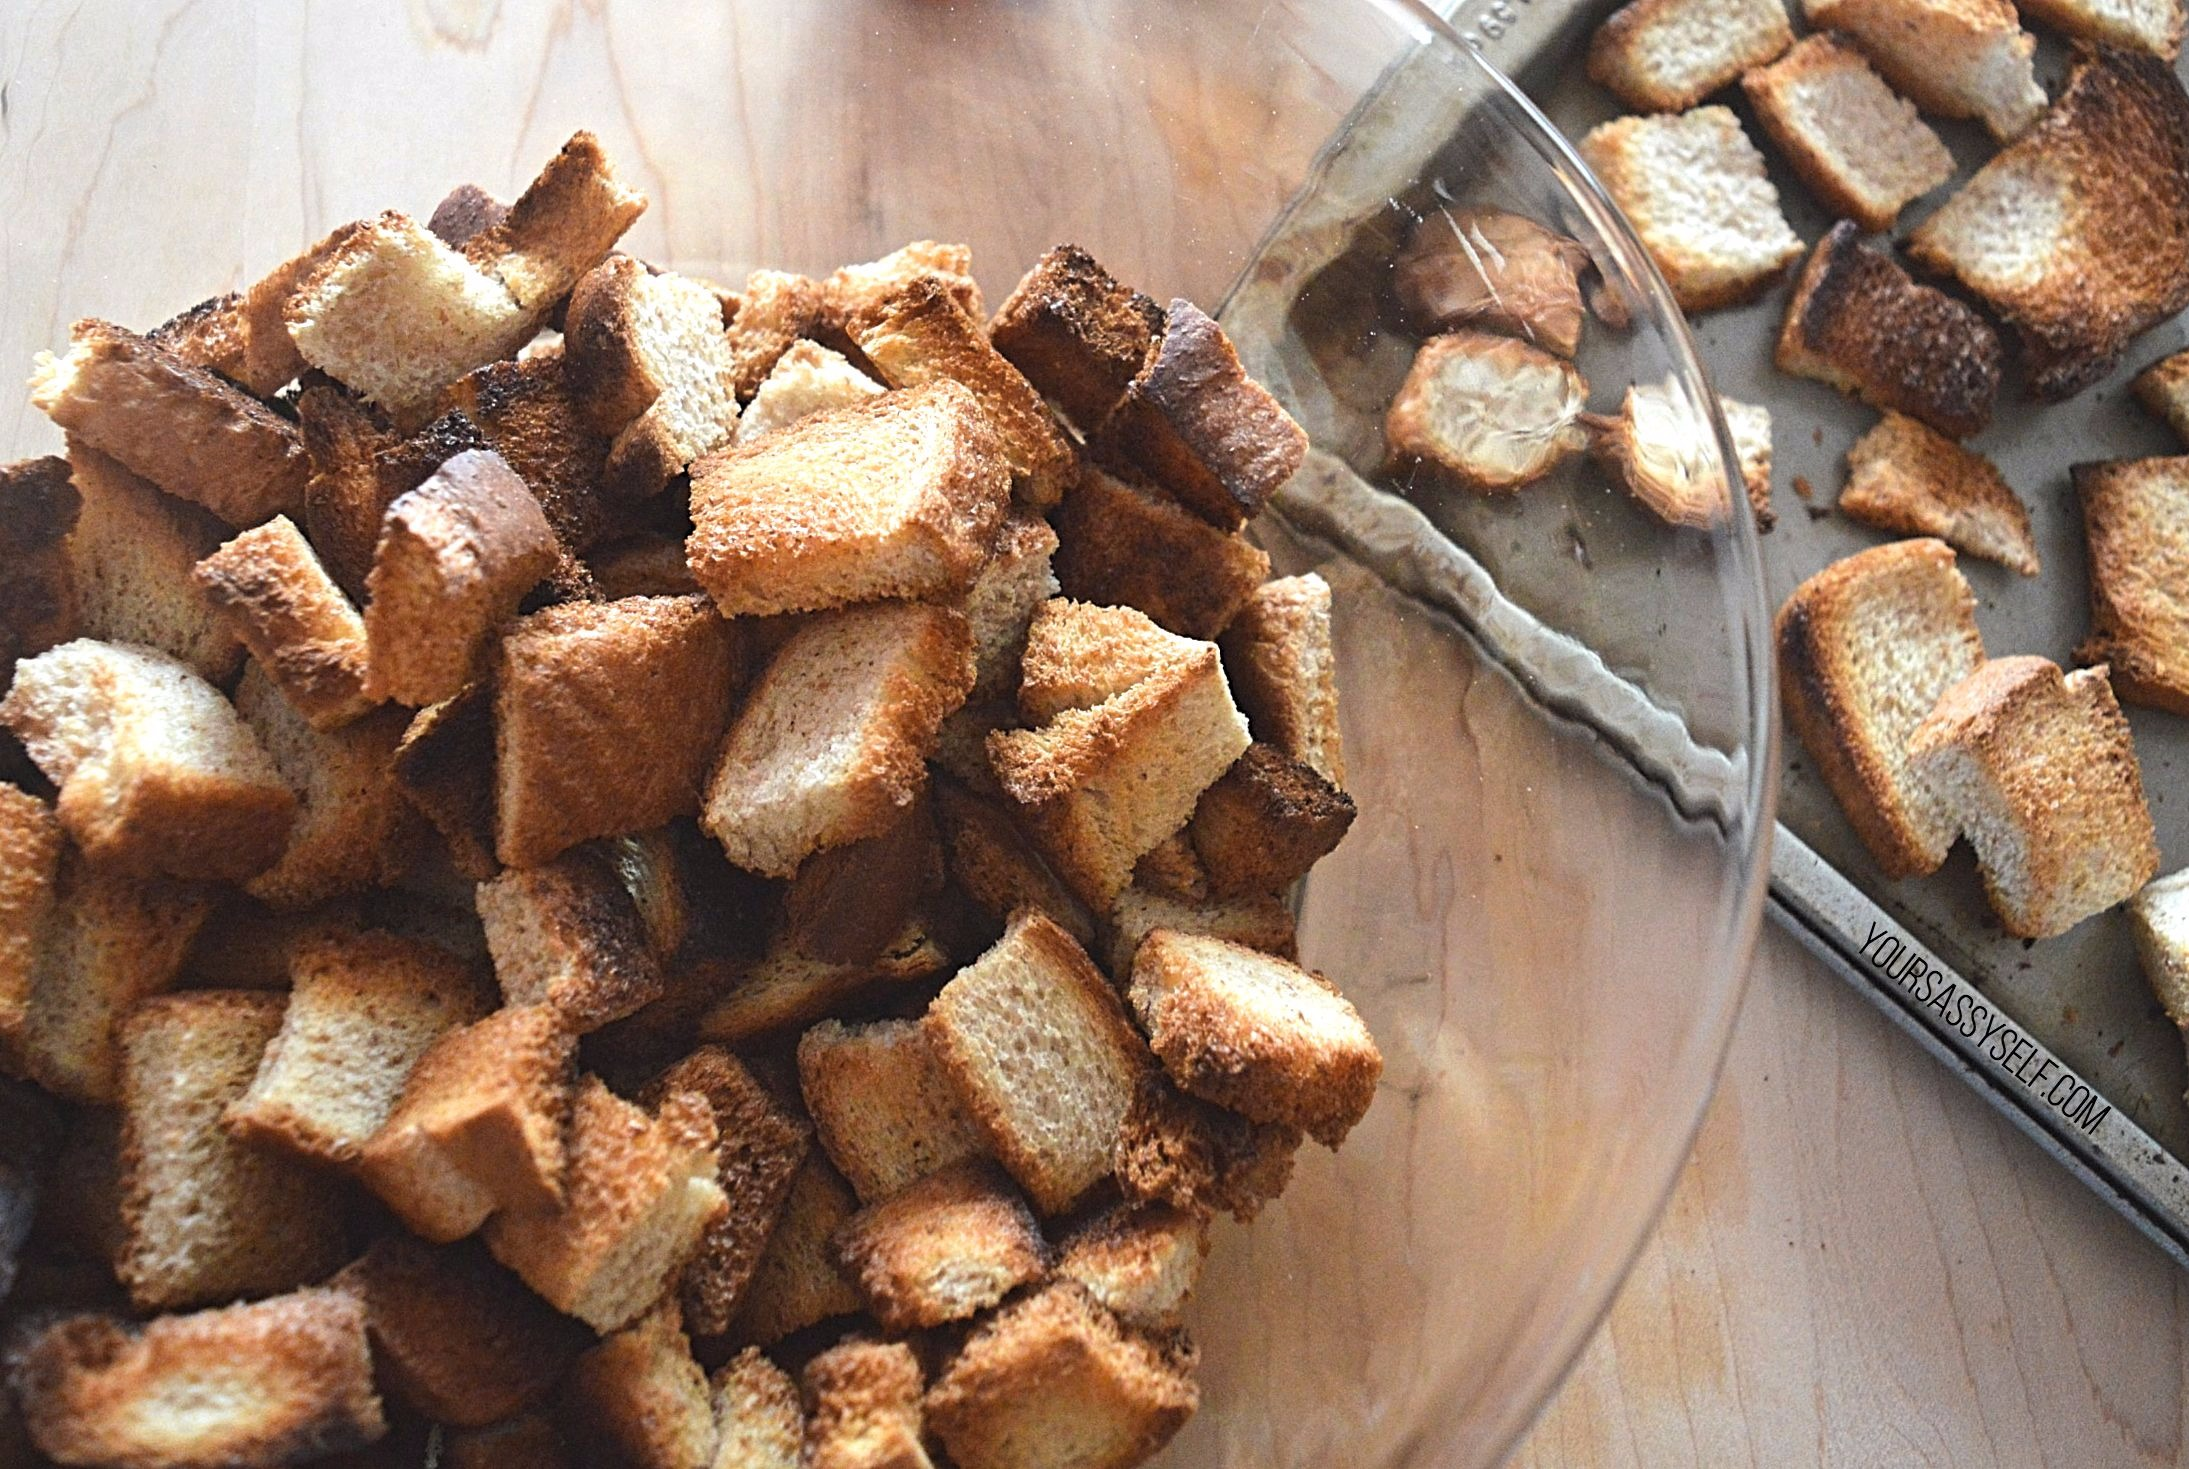 Toasted bread cubes - yoursssyself.com